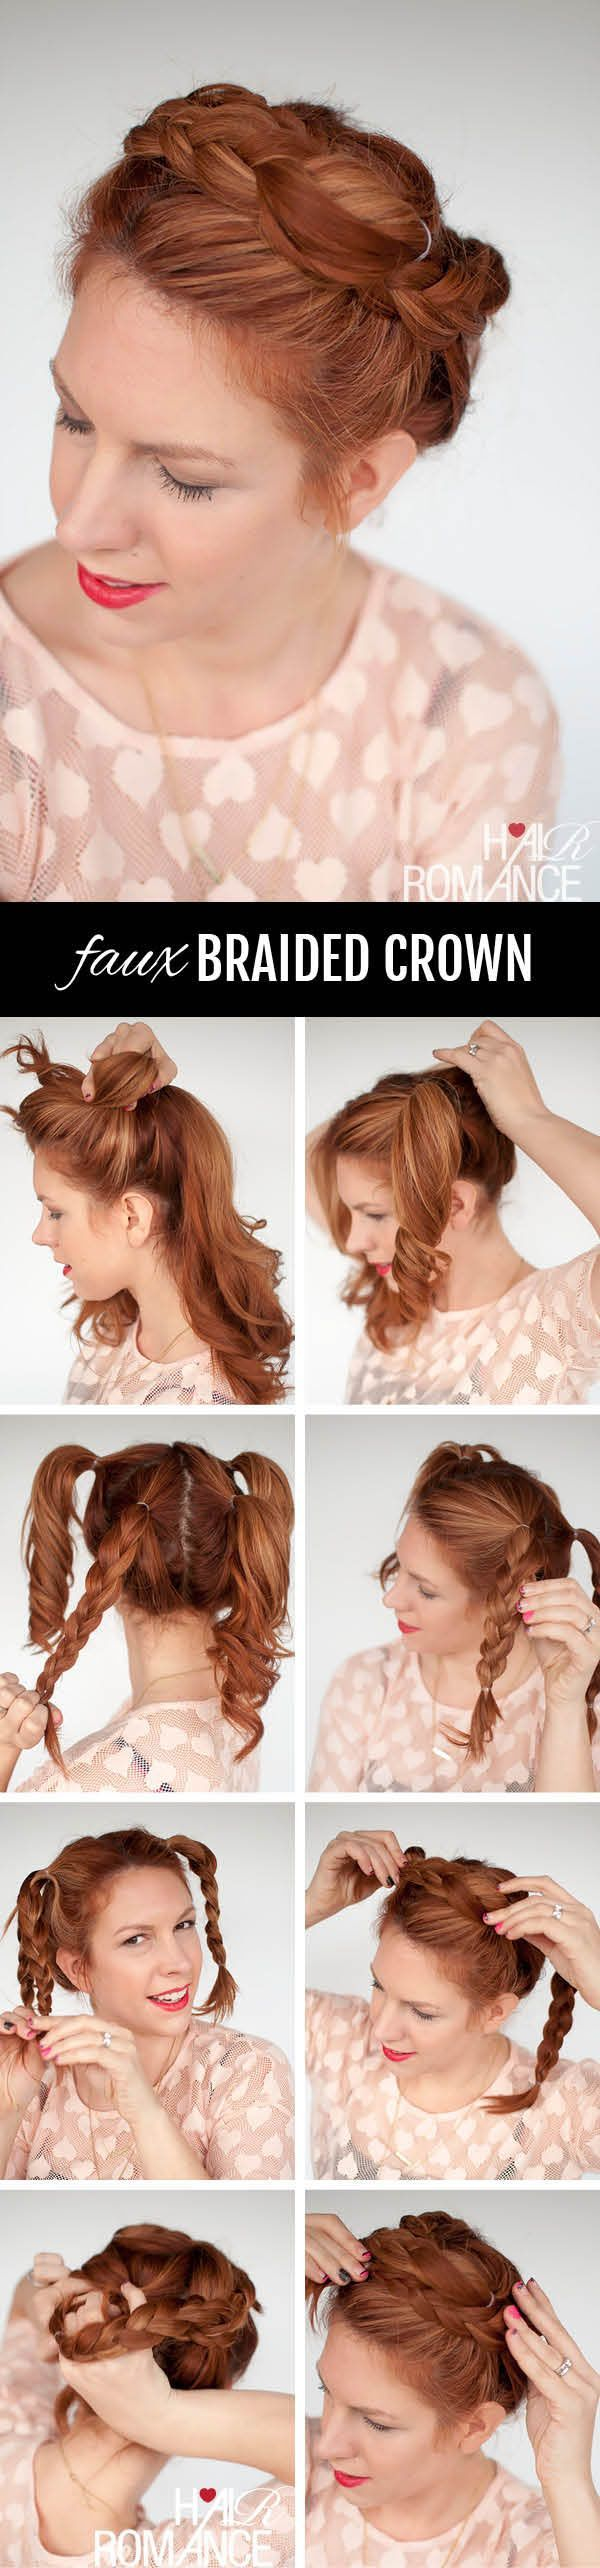 simple hair styles for everyday 1000 ideas about crown hairstyles on 5572 | 88b207d80e777696ce1462053c5572f4